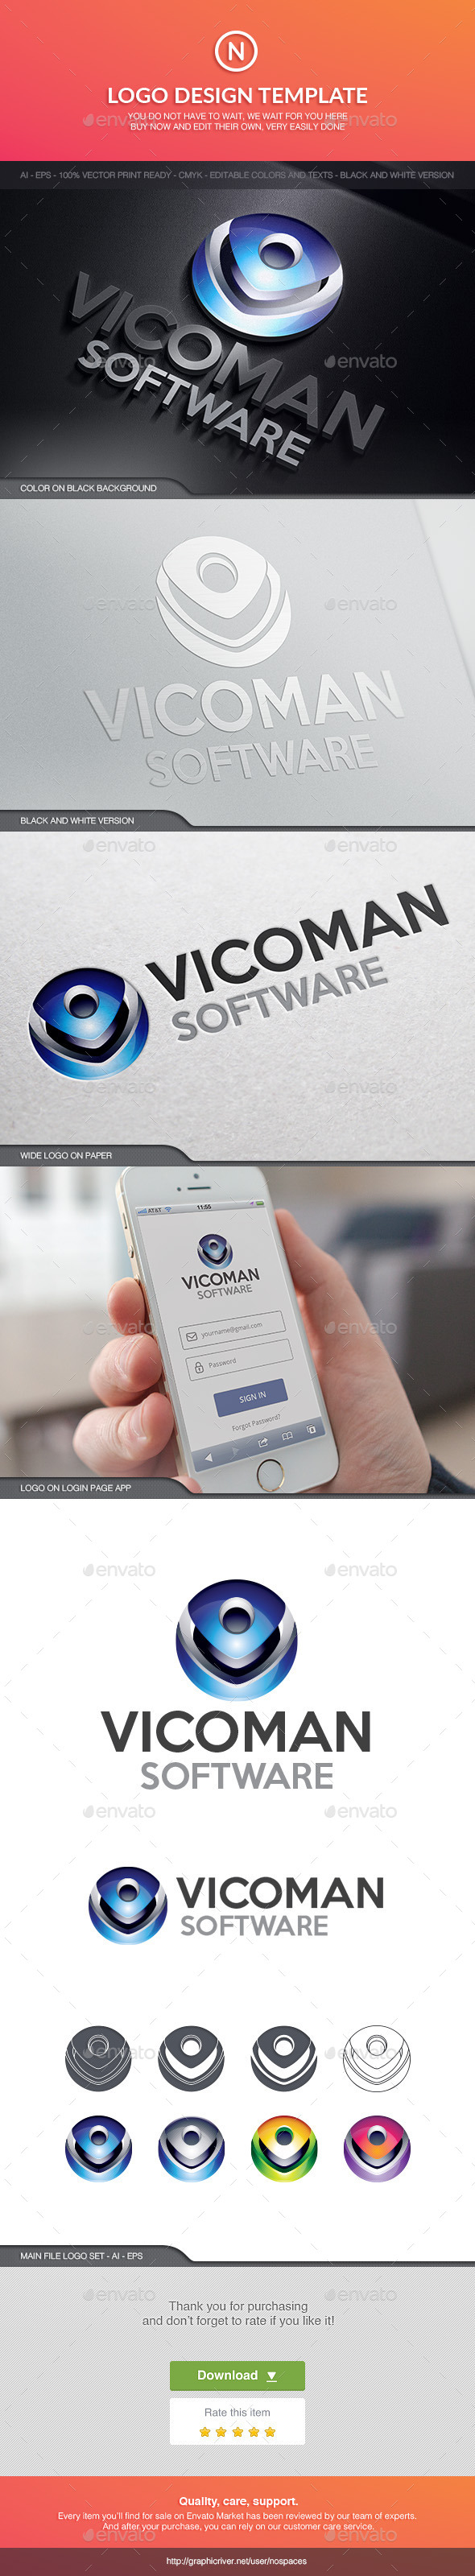 Vicoman Software - Abstract Logo Templates